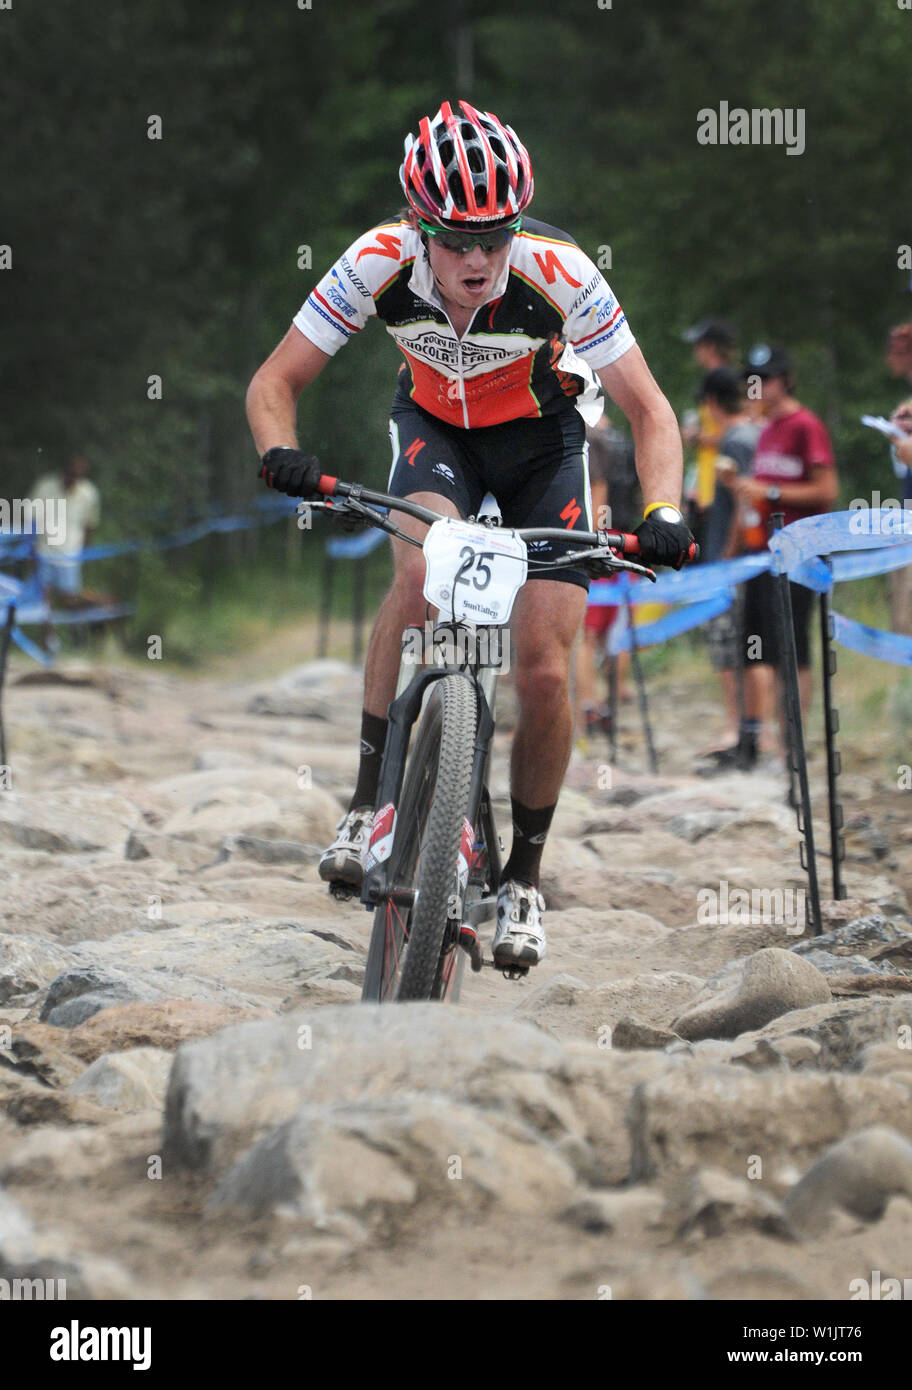 9a6cd2f1024 U.S. Cross Country Ski Team athlete Tad Elliott cruises through the rock  garden at the USA